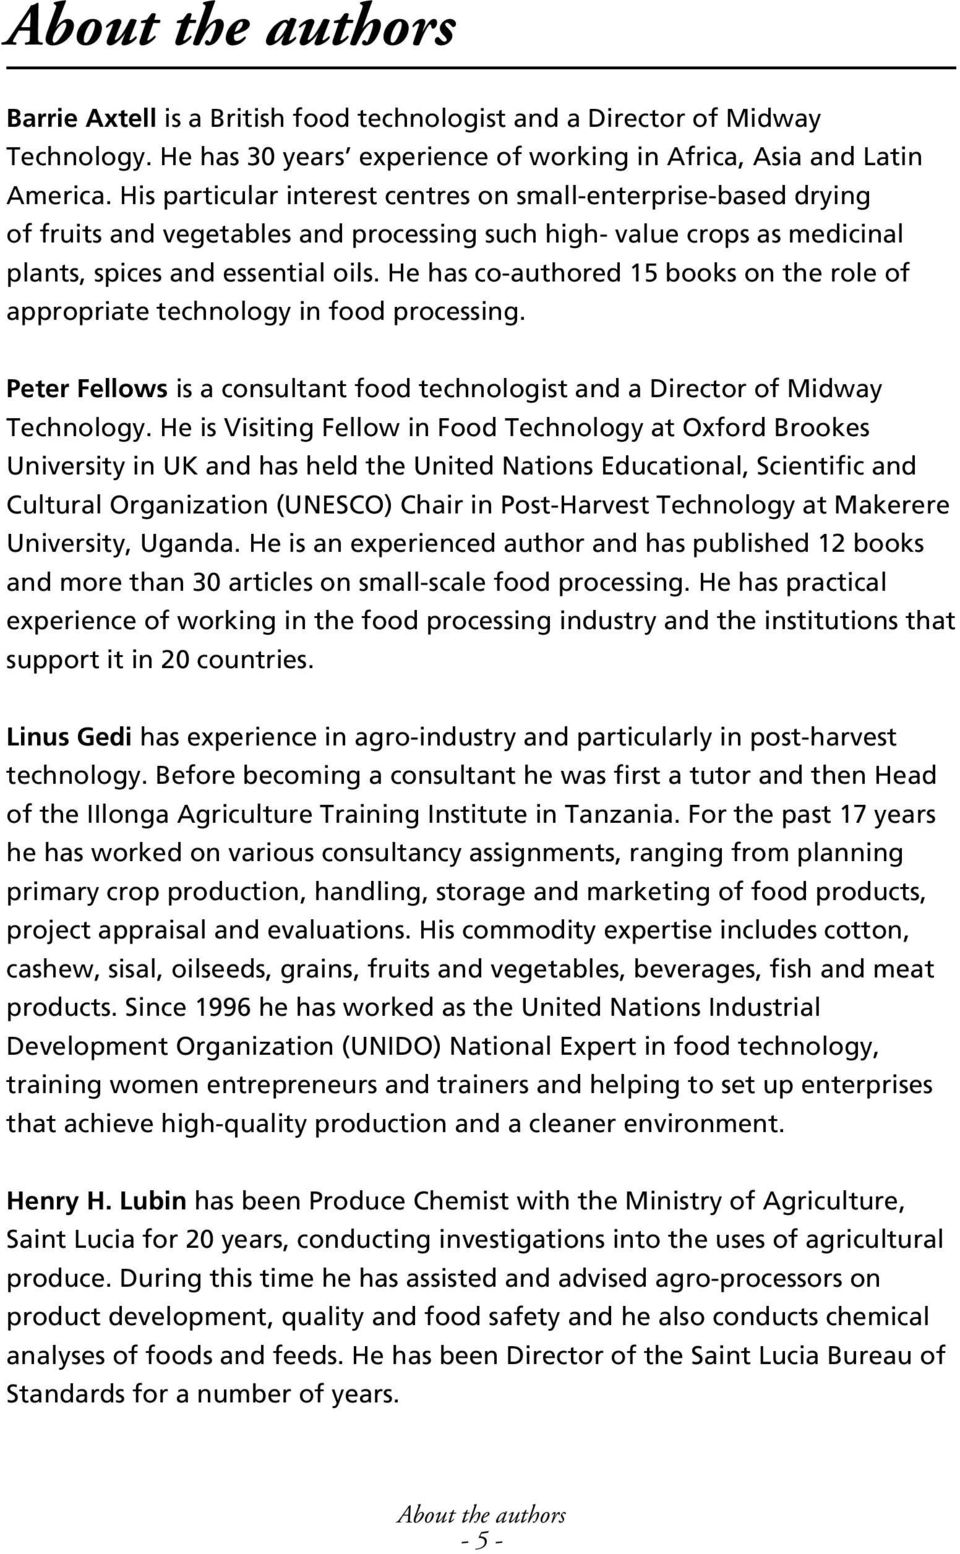 He has co-authored 15 books on the role of appropriate technology in food processing. Peter Fellows is a consultant food technologist and a Director of Midway Technology.